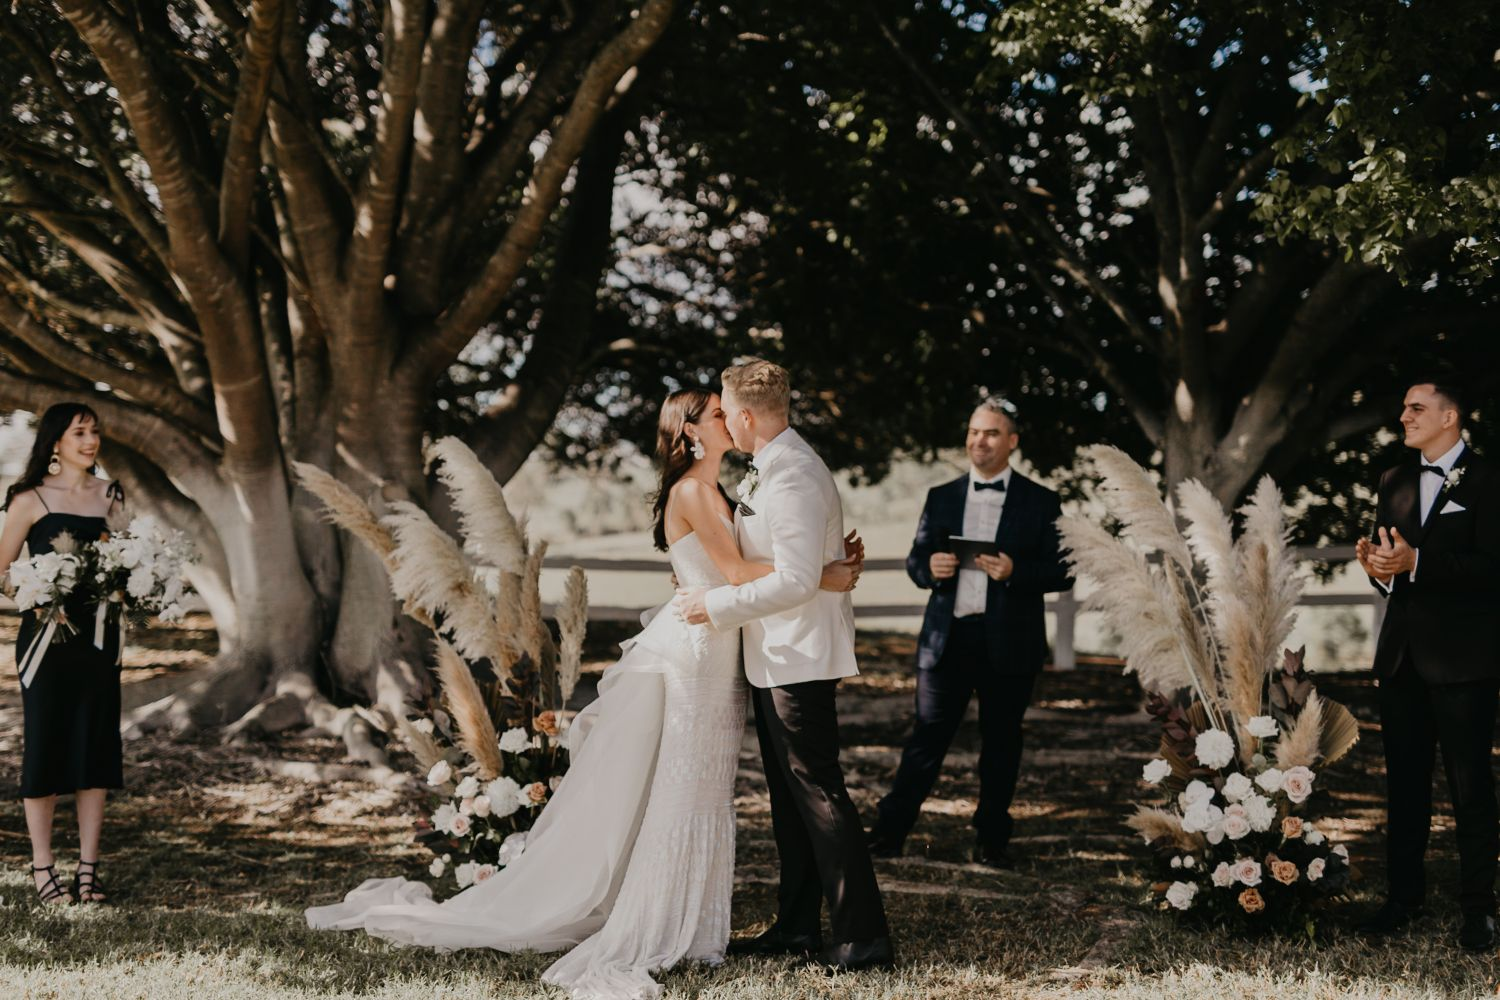 brisbane wedding florals matthew gillam photography flowers bridal bouquet installations